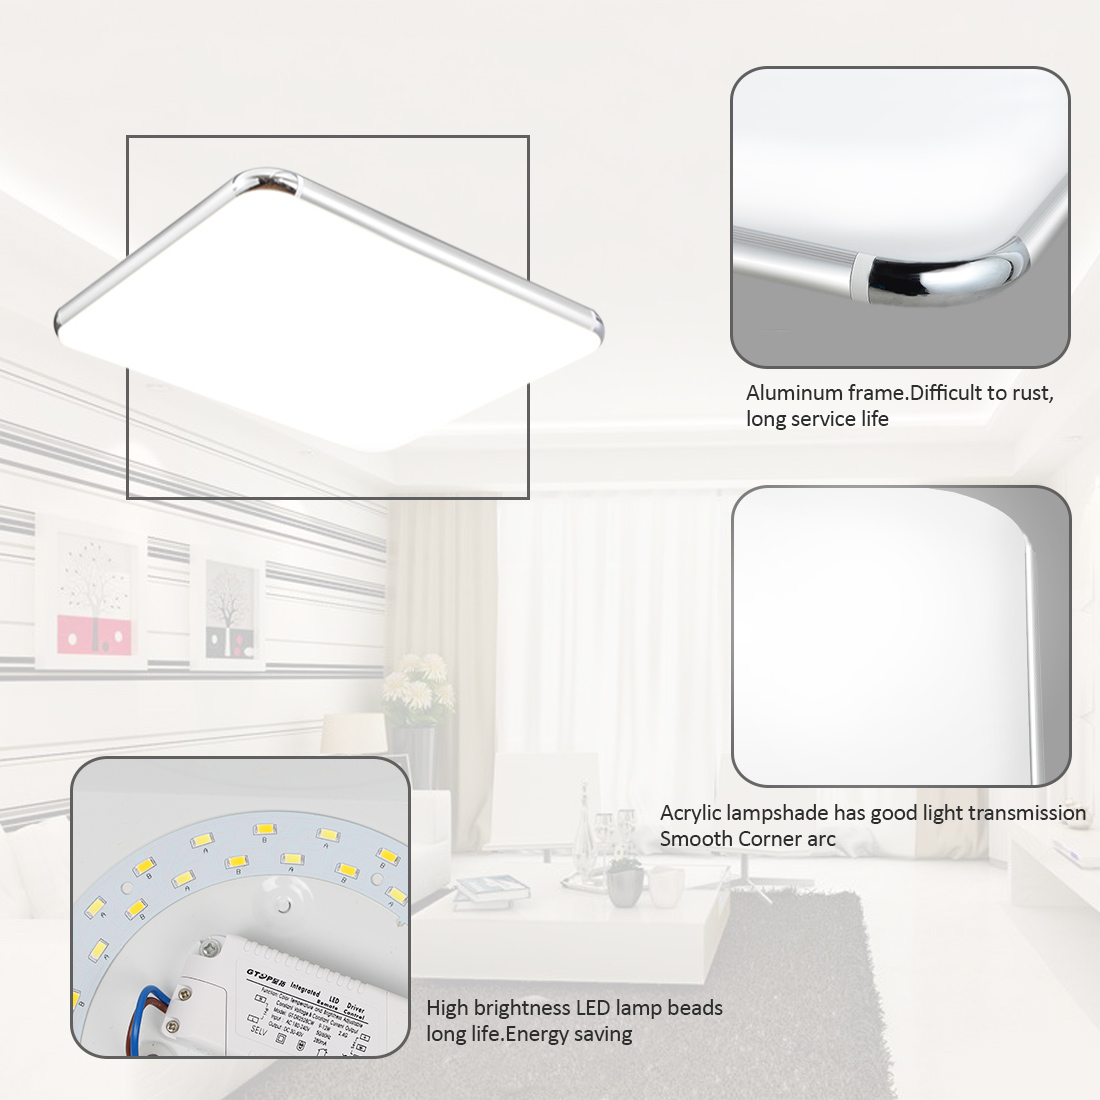 Led Panel Bad Dimmbar Details Zu Dimmbar Led Panel Ultraslim Lampe Deckenleuchte 16w 96w Bad Küche Wandleuchte De